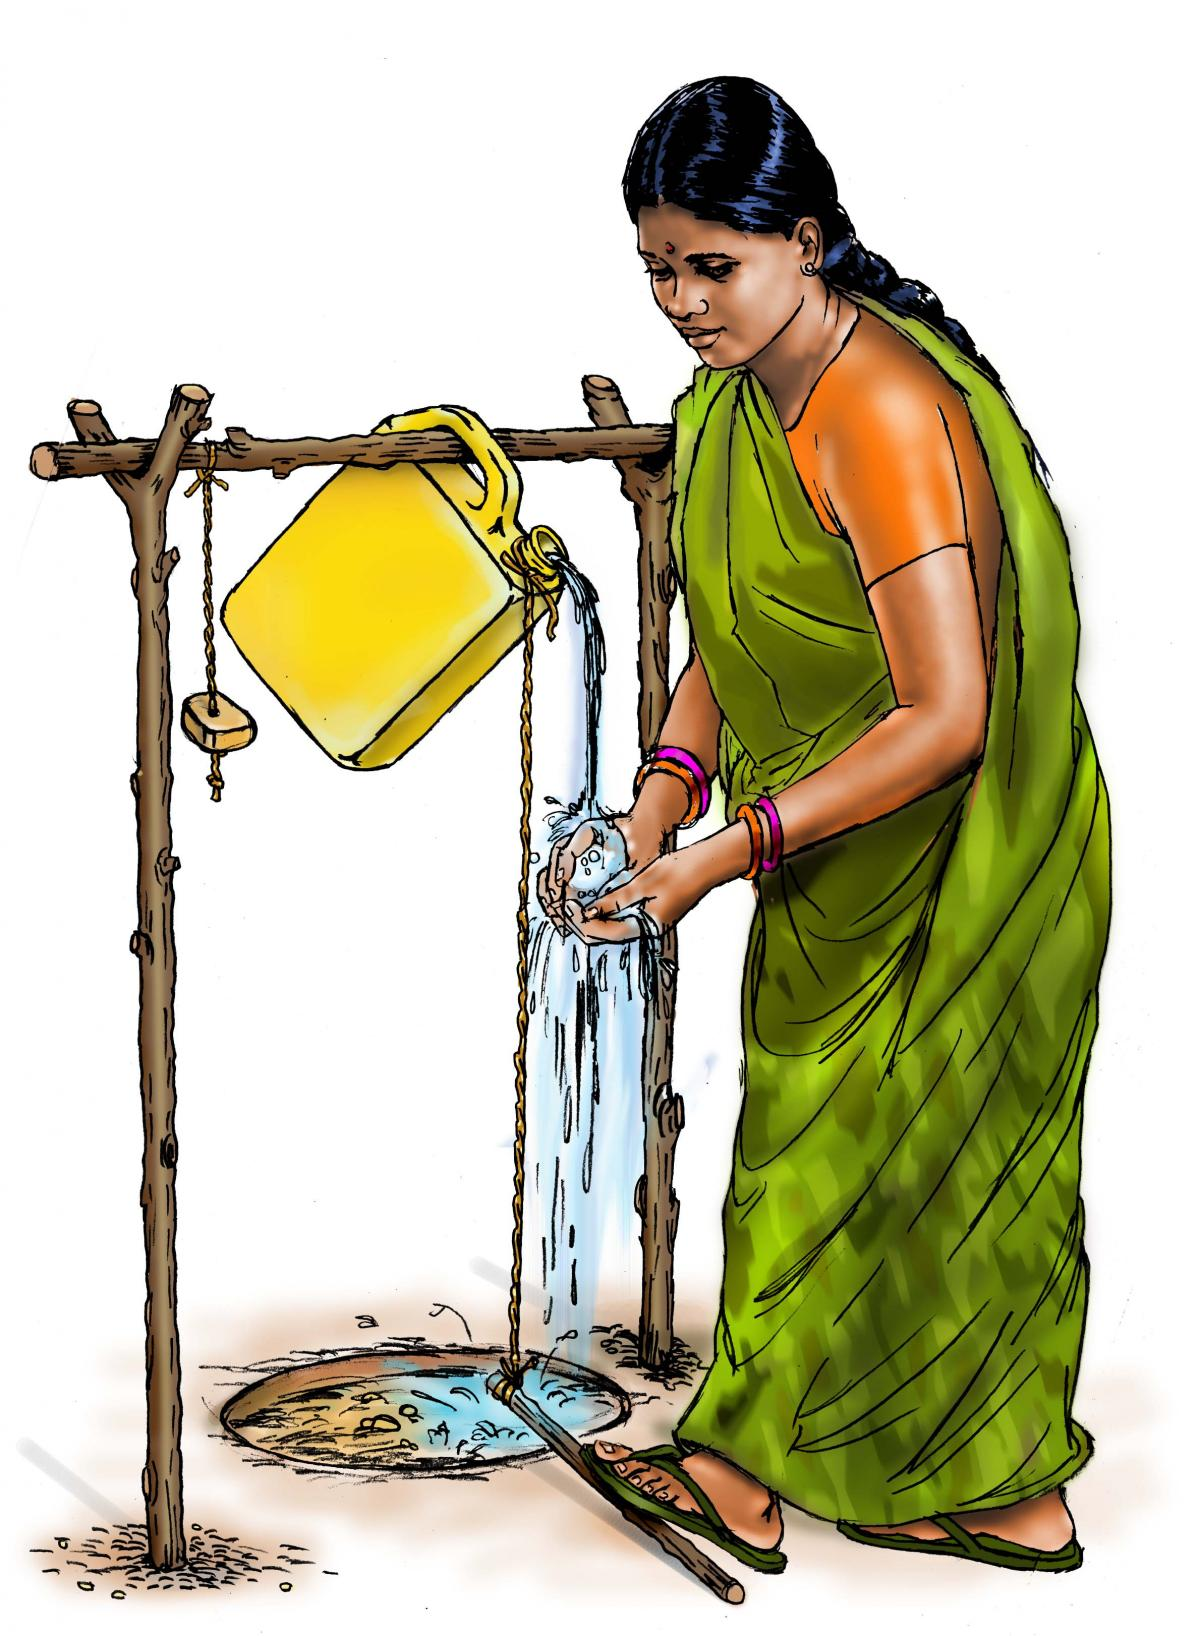 Hygiene - Woman washing hands - 00 - India